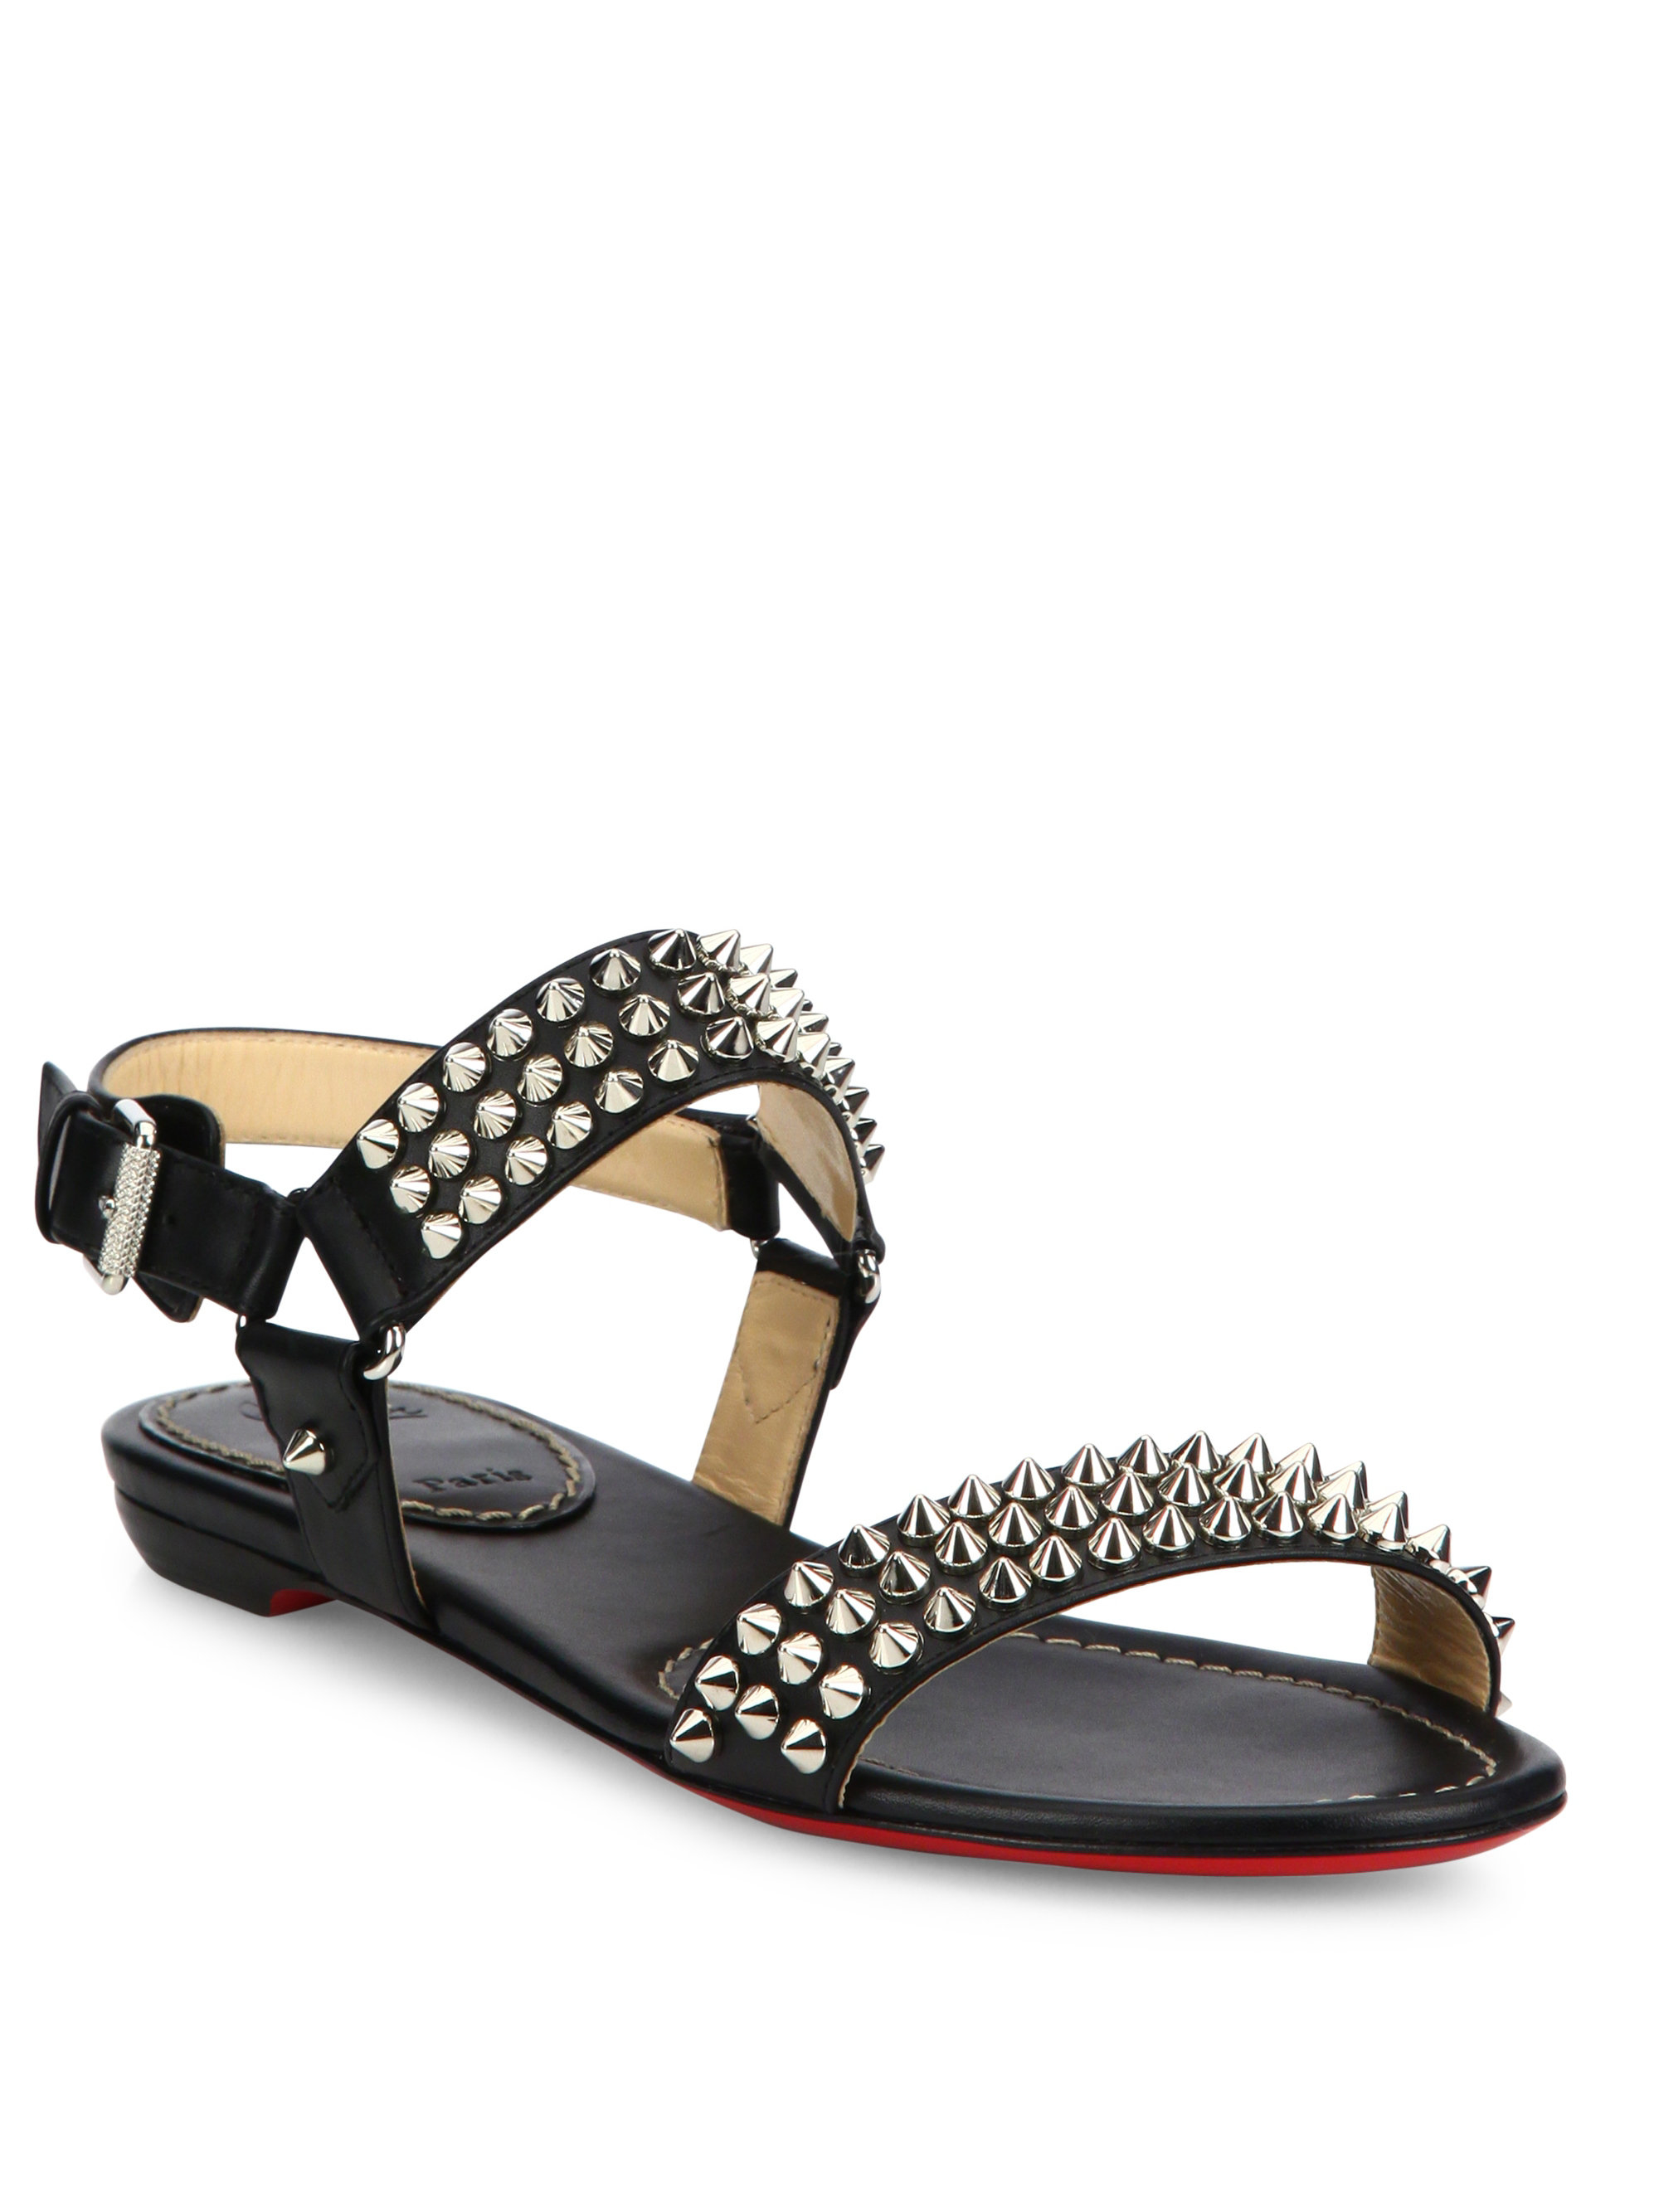 1f7305abe3c2 Lyst - Christian Louboutin Bikee Bike Spiked Leather Flat Sandals in ...